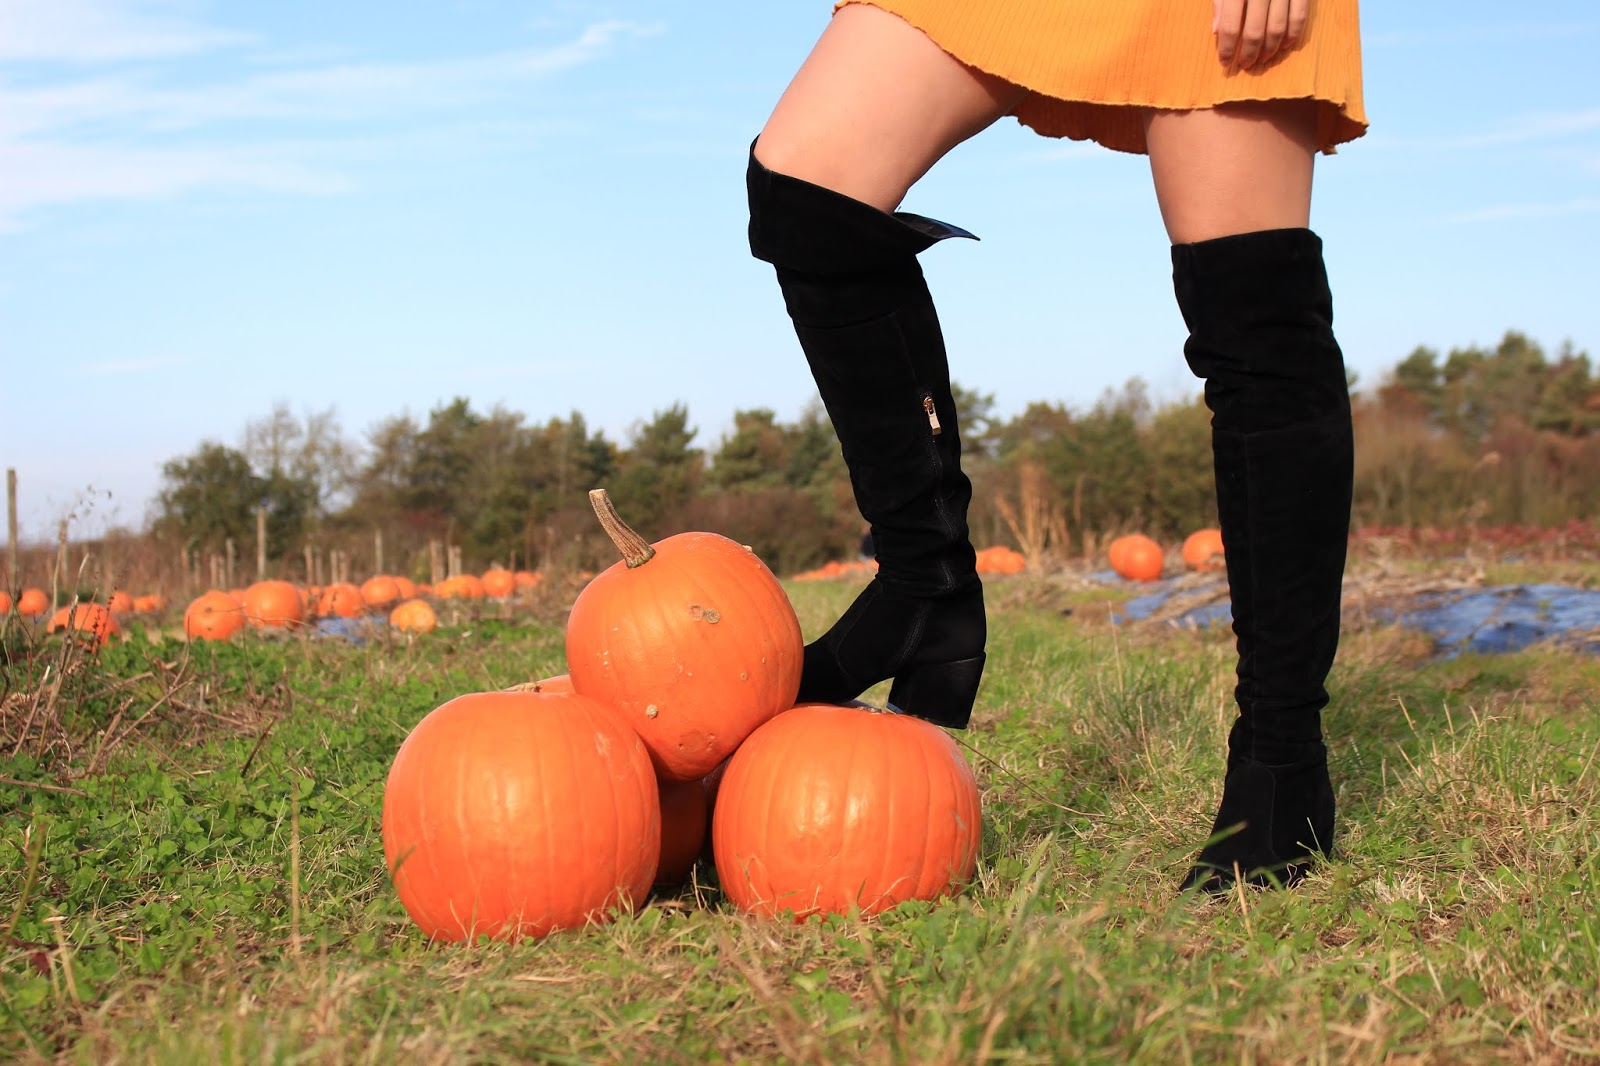 Abbey's foot, clad in black knee high boots, rests on a stack of pumpkins